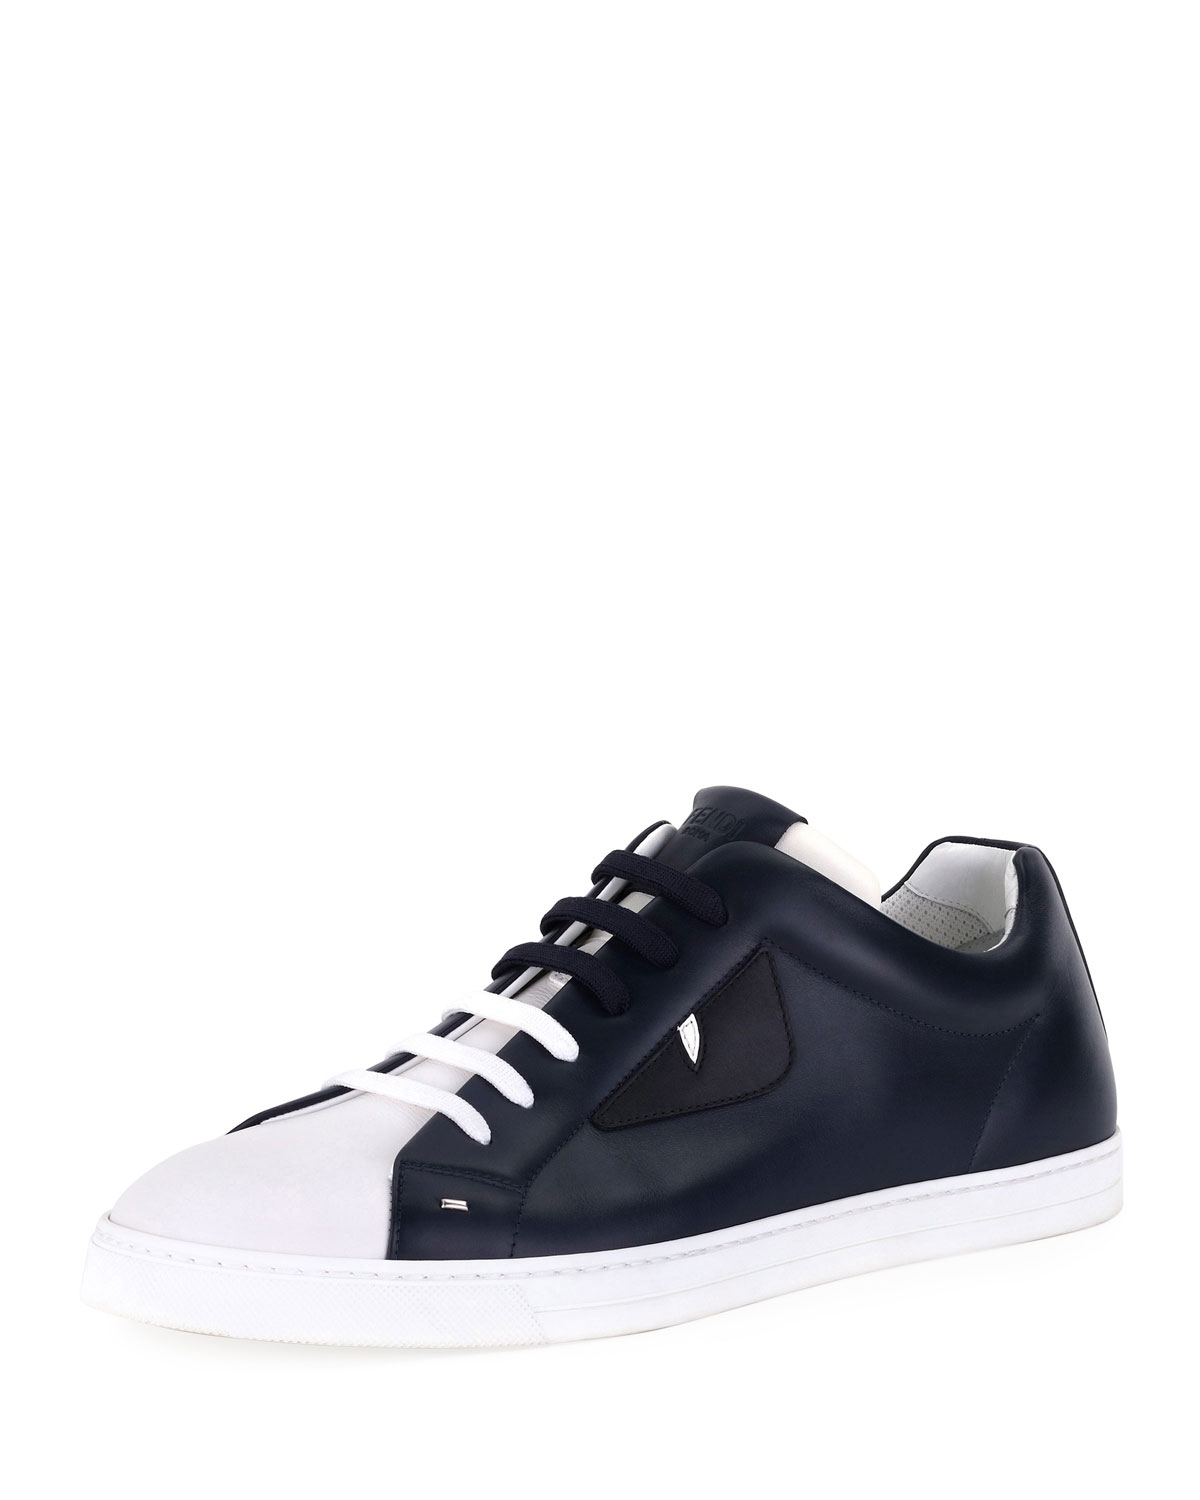 20ad933d49 Men's Monster Leather Low-Top Sneakers